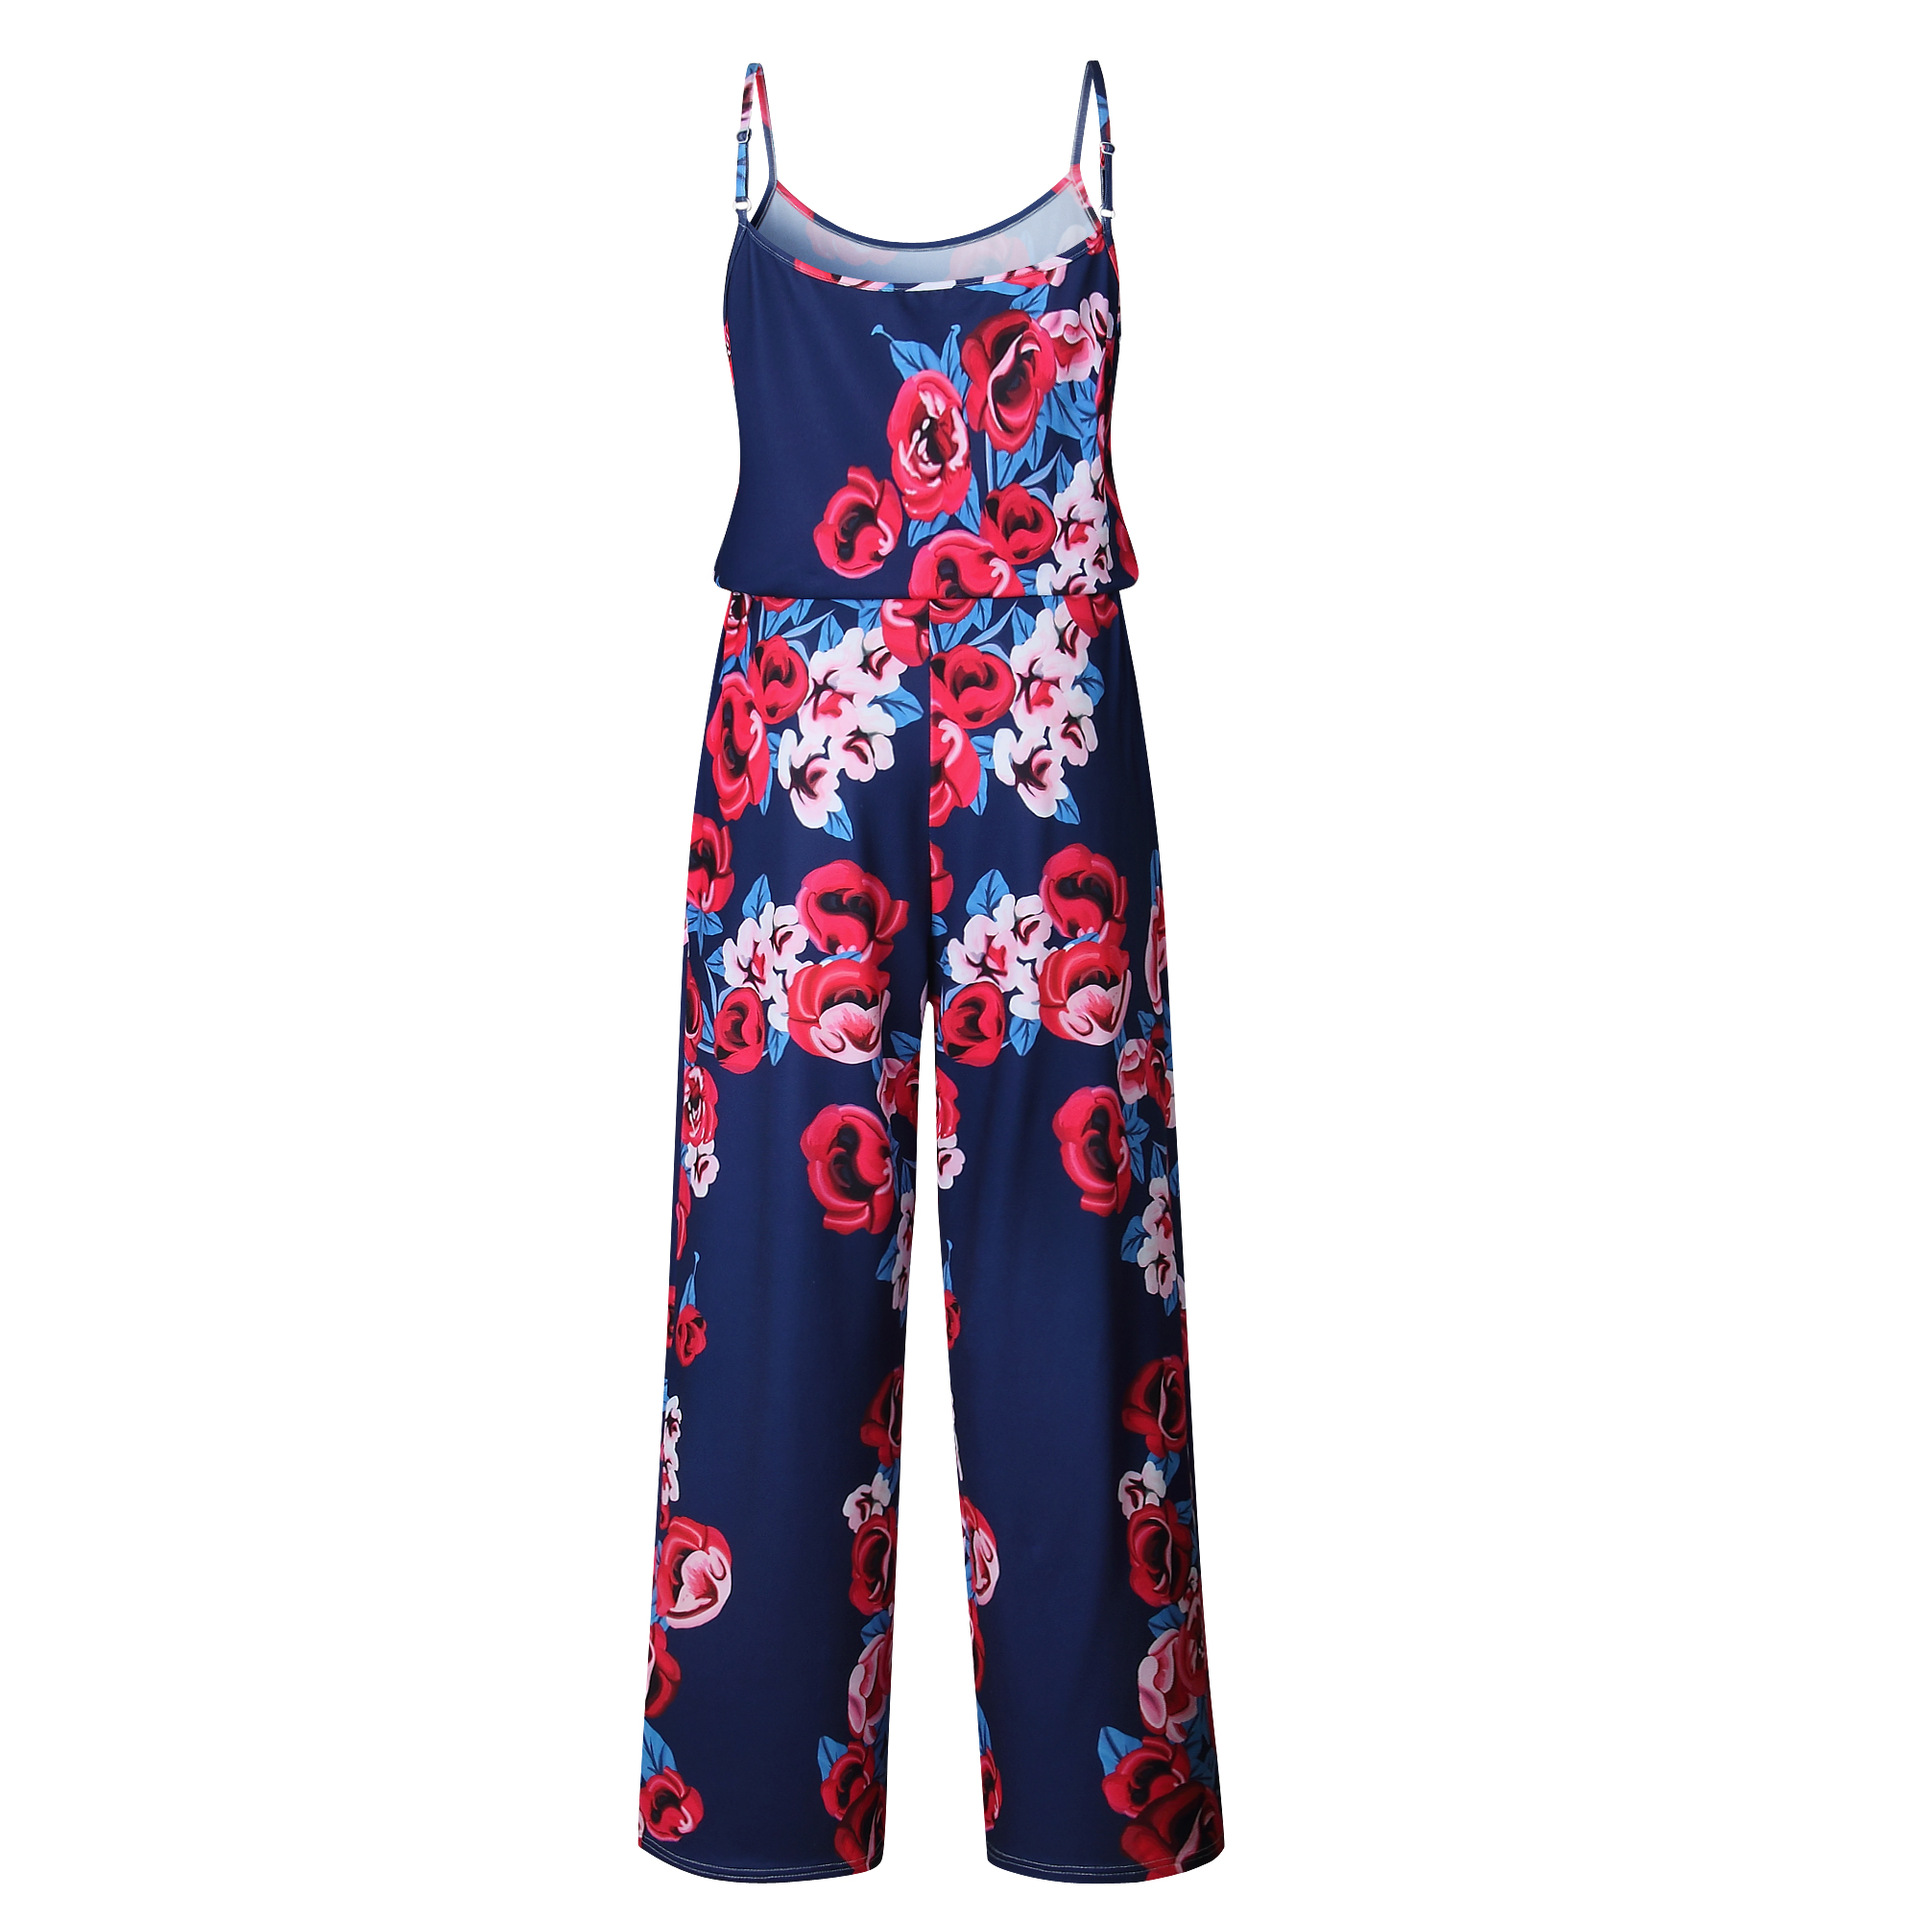 Spaghetti Strap Jumpsuit Women 2018 Summer Long Pants Floral Print Rompers Beach Casual Jumpsuits Sleeveless Sashes Playsuits 50